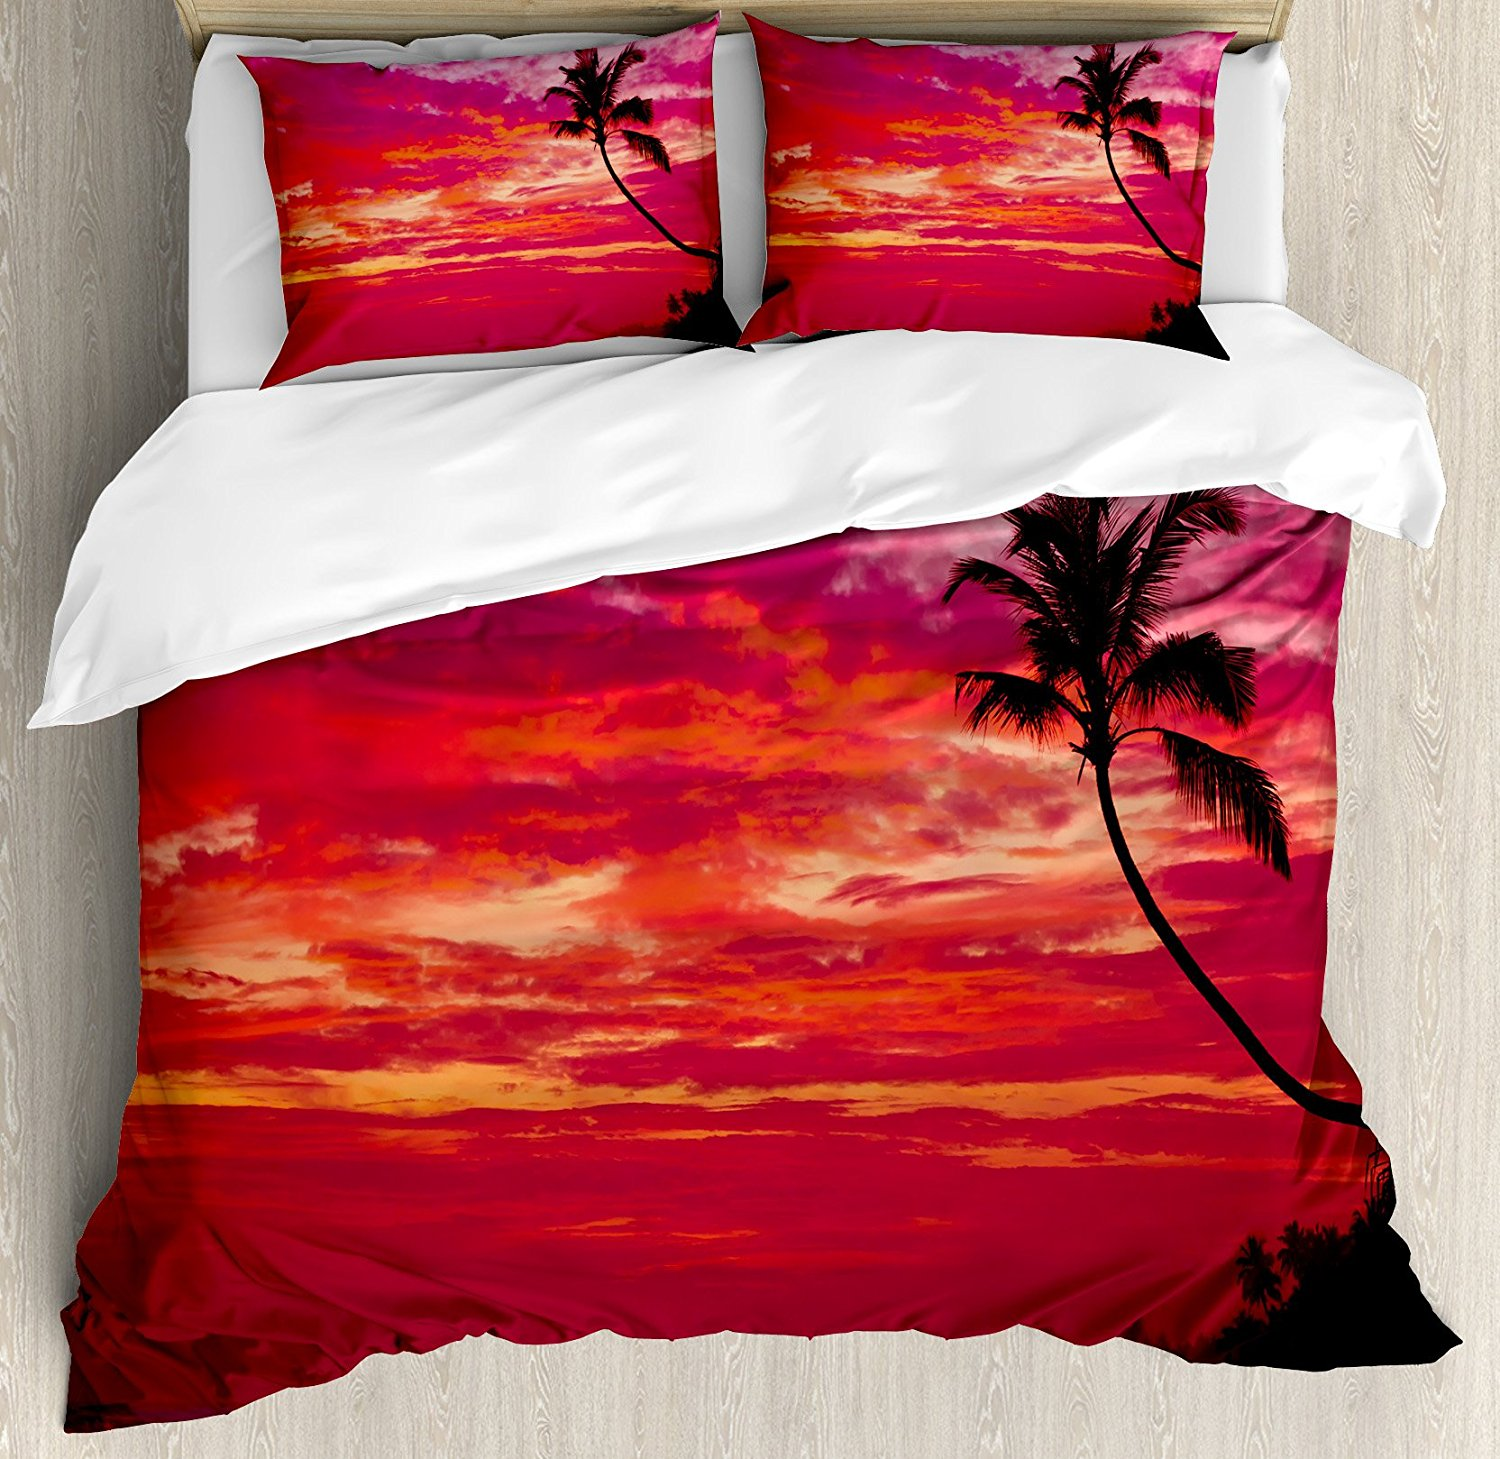 Ocean Duvet Cover Set Sunset View from a Tropical Island Beach with Silhouette of Palm Tree on the Shore Art Print Bedding Set